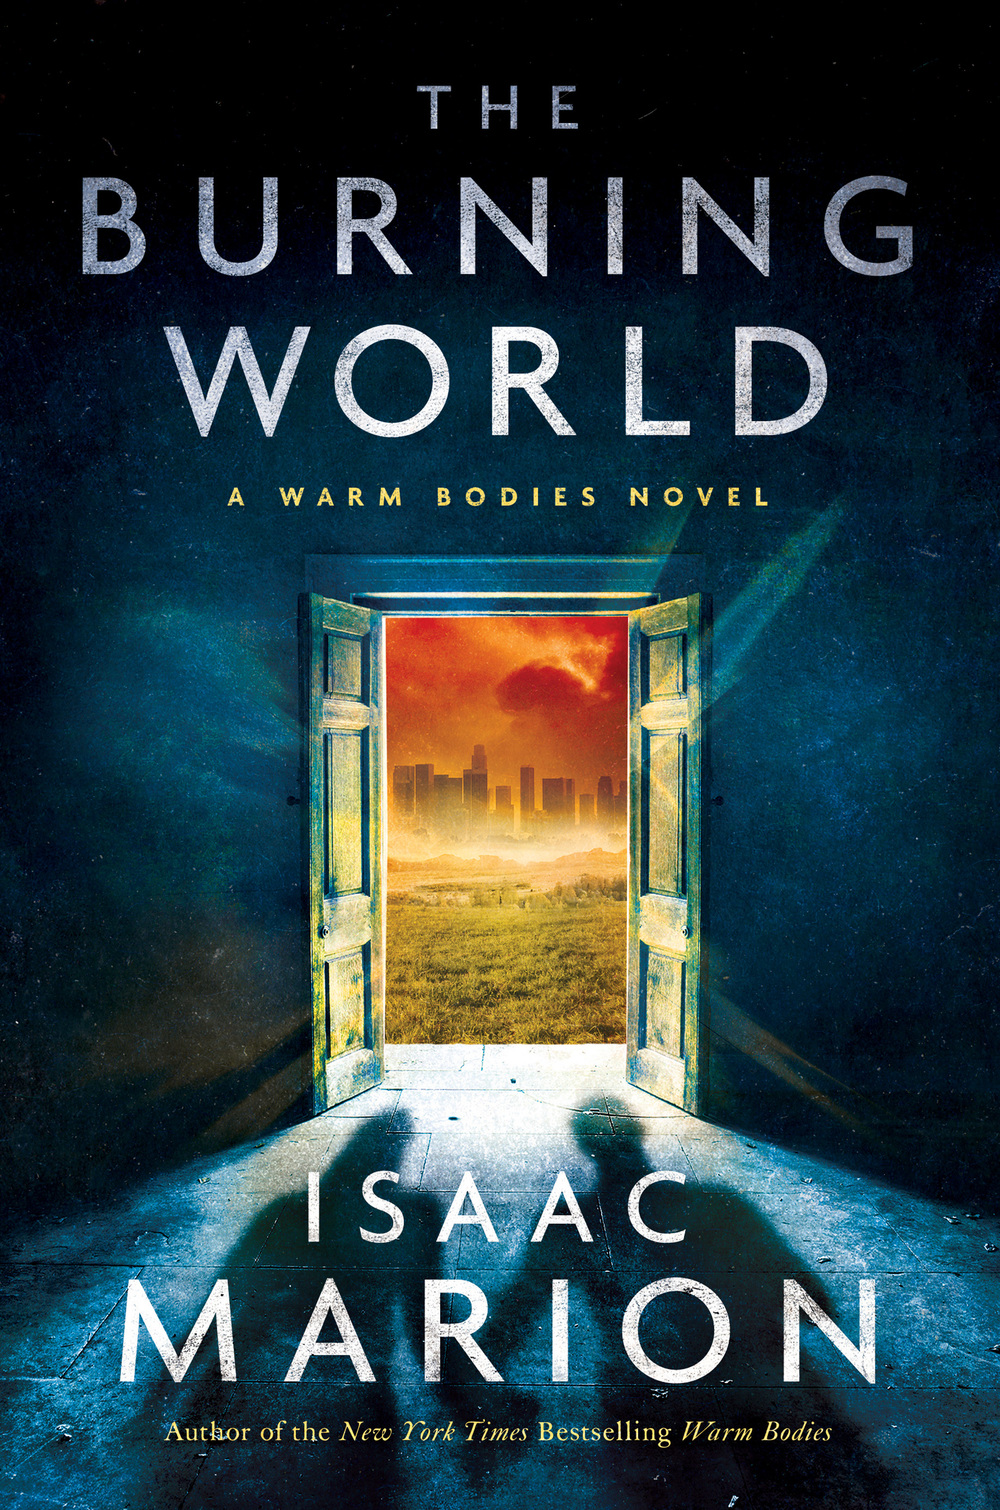 The Burning World book cover